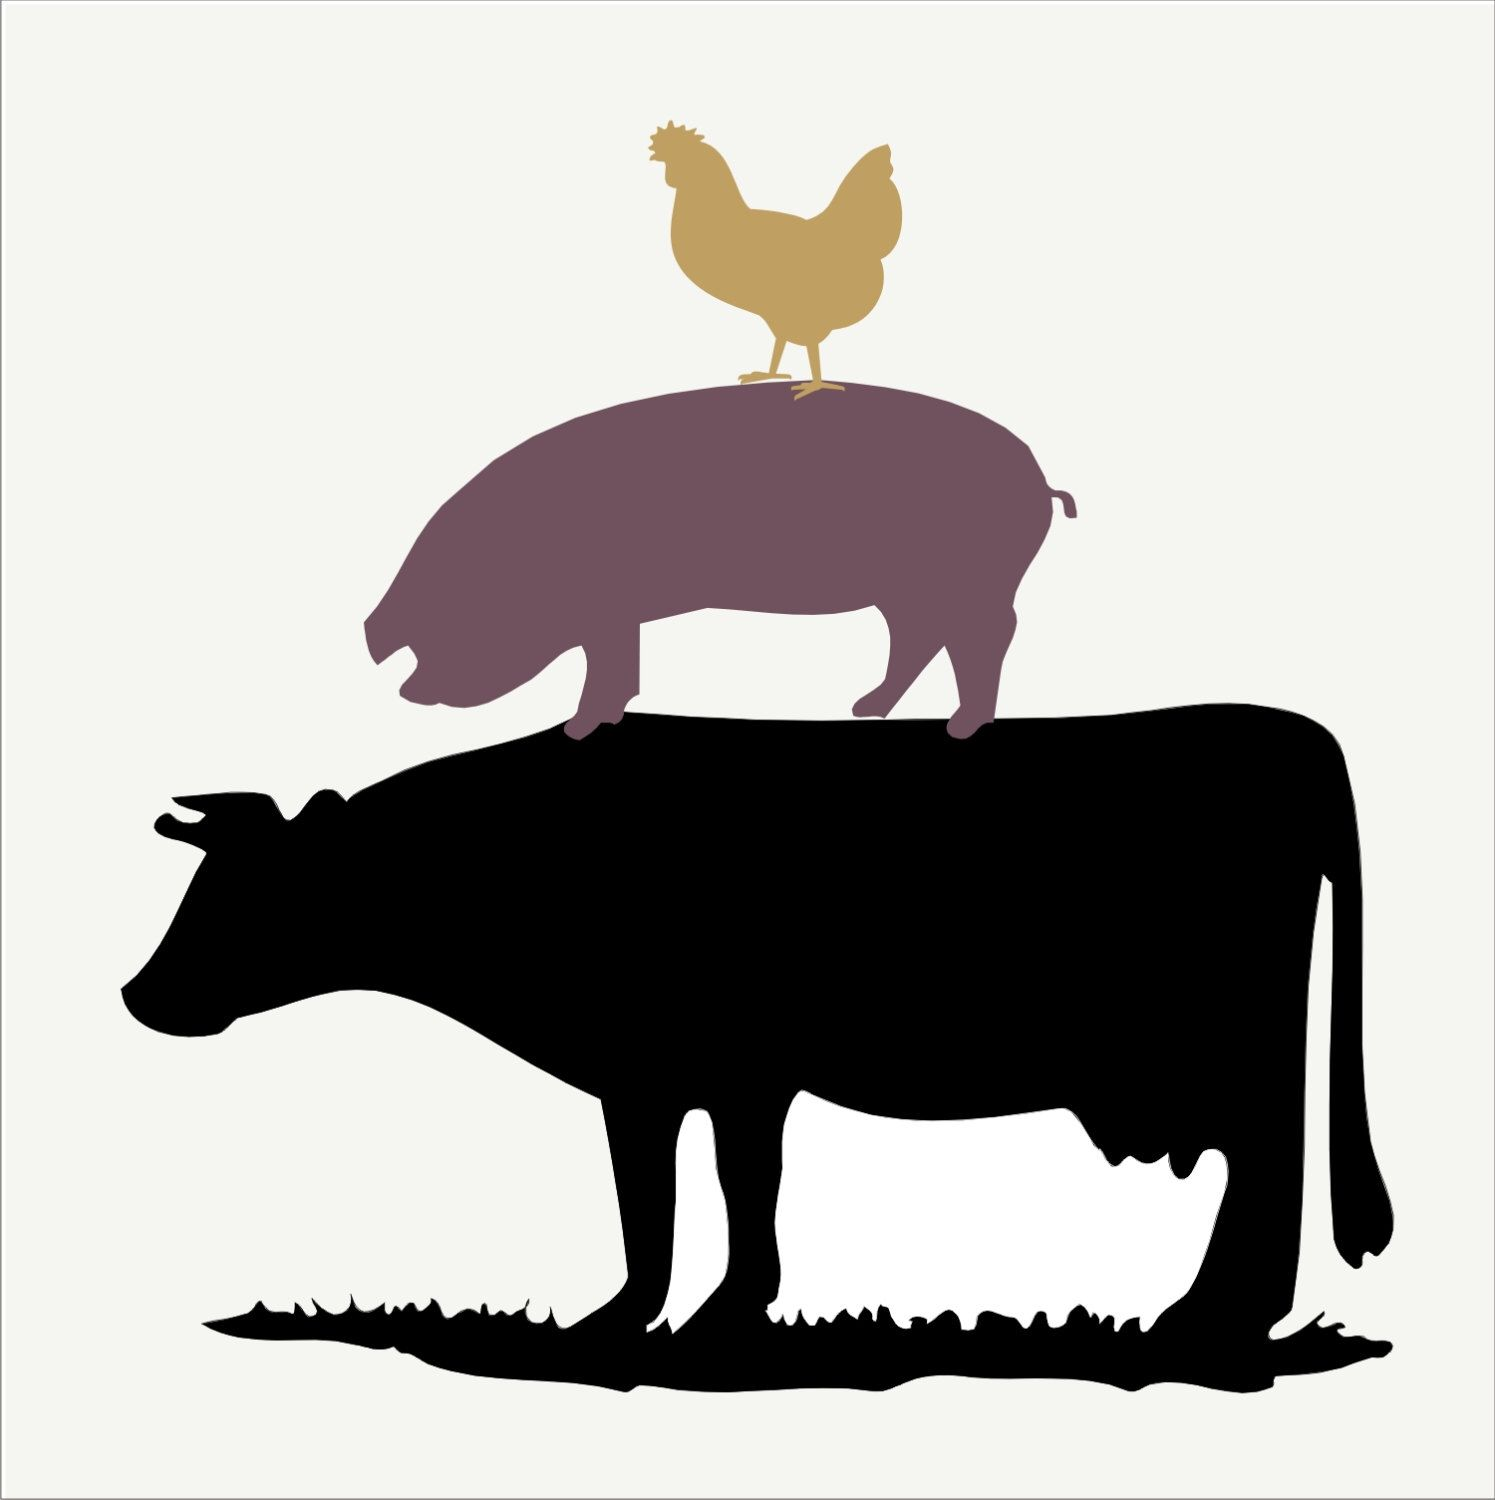 Cow chicken stack farm. Chickens clipart pig